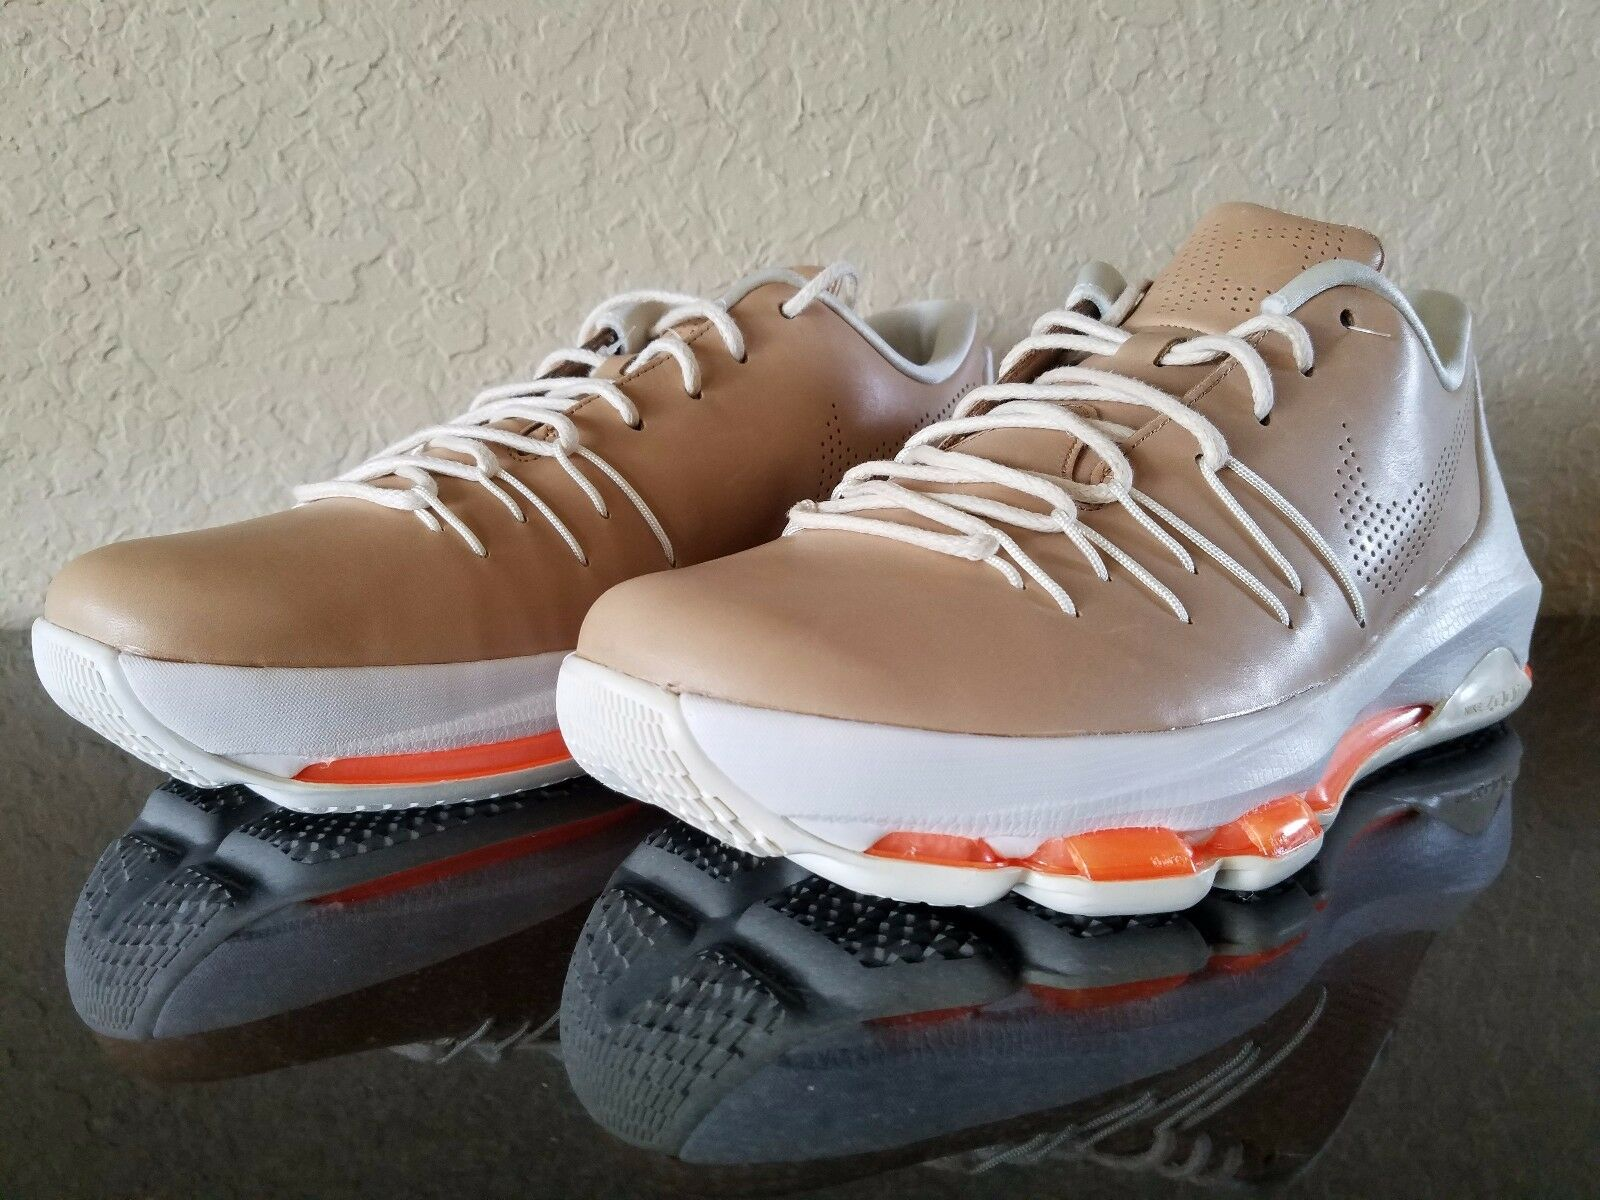 Nike KD 8 EXT VIII Mens Lifestyle Casual SNEAKERS Vachetta Tan Seasonal price cuts, discount benefits